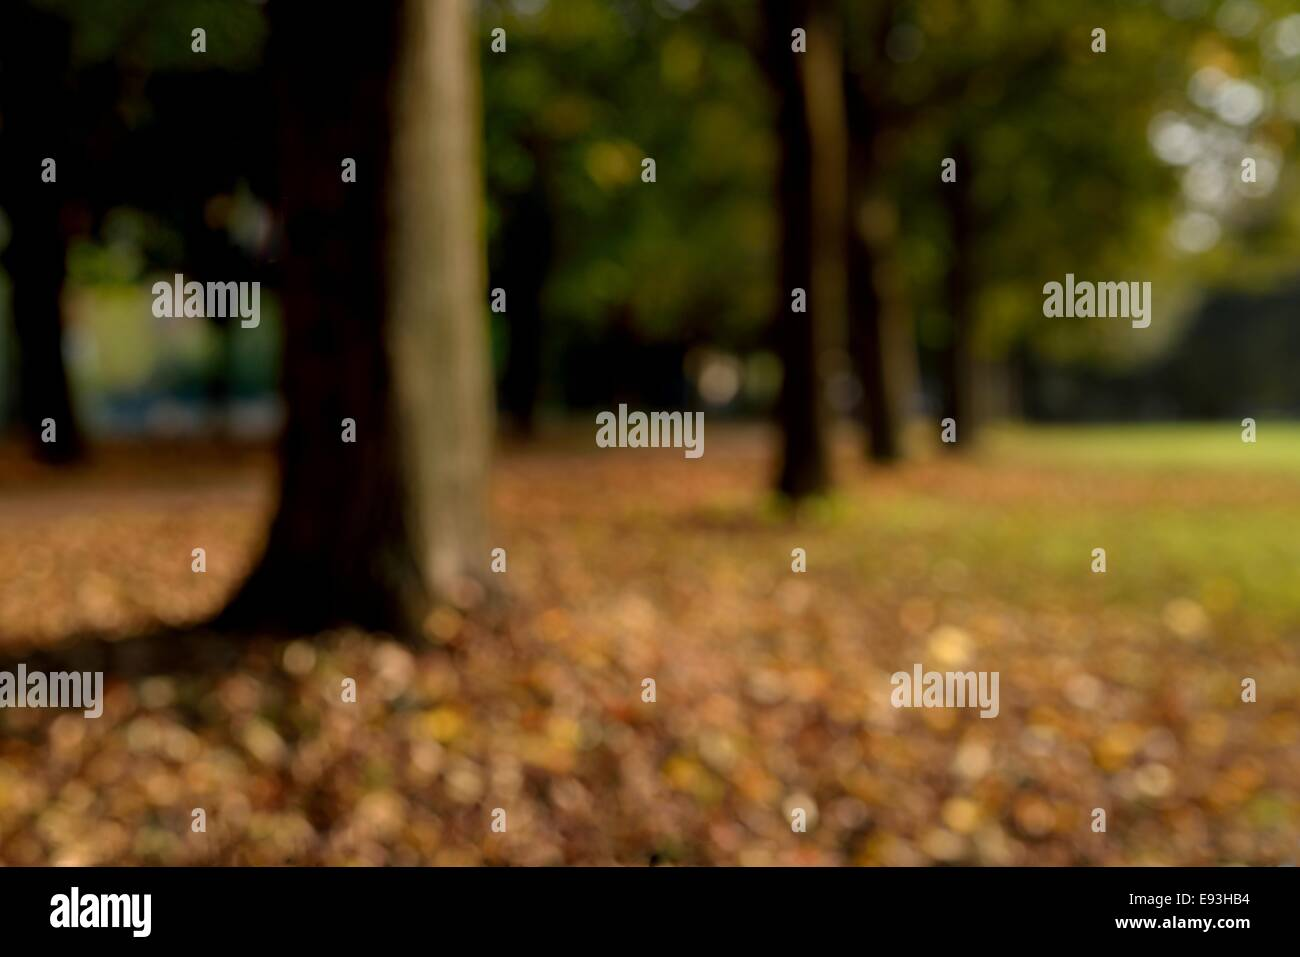 Trees in a city park (unfocused). - Stock Image